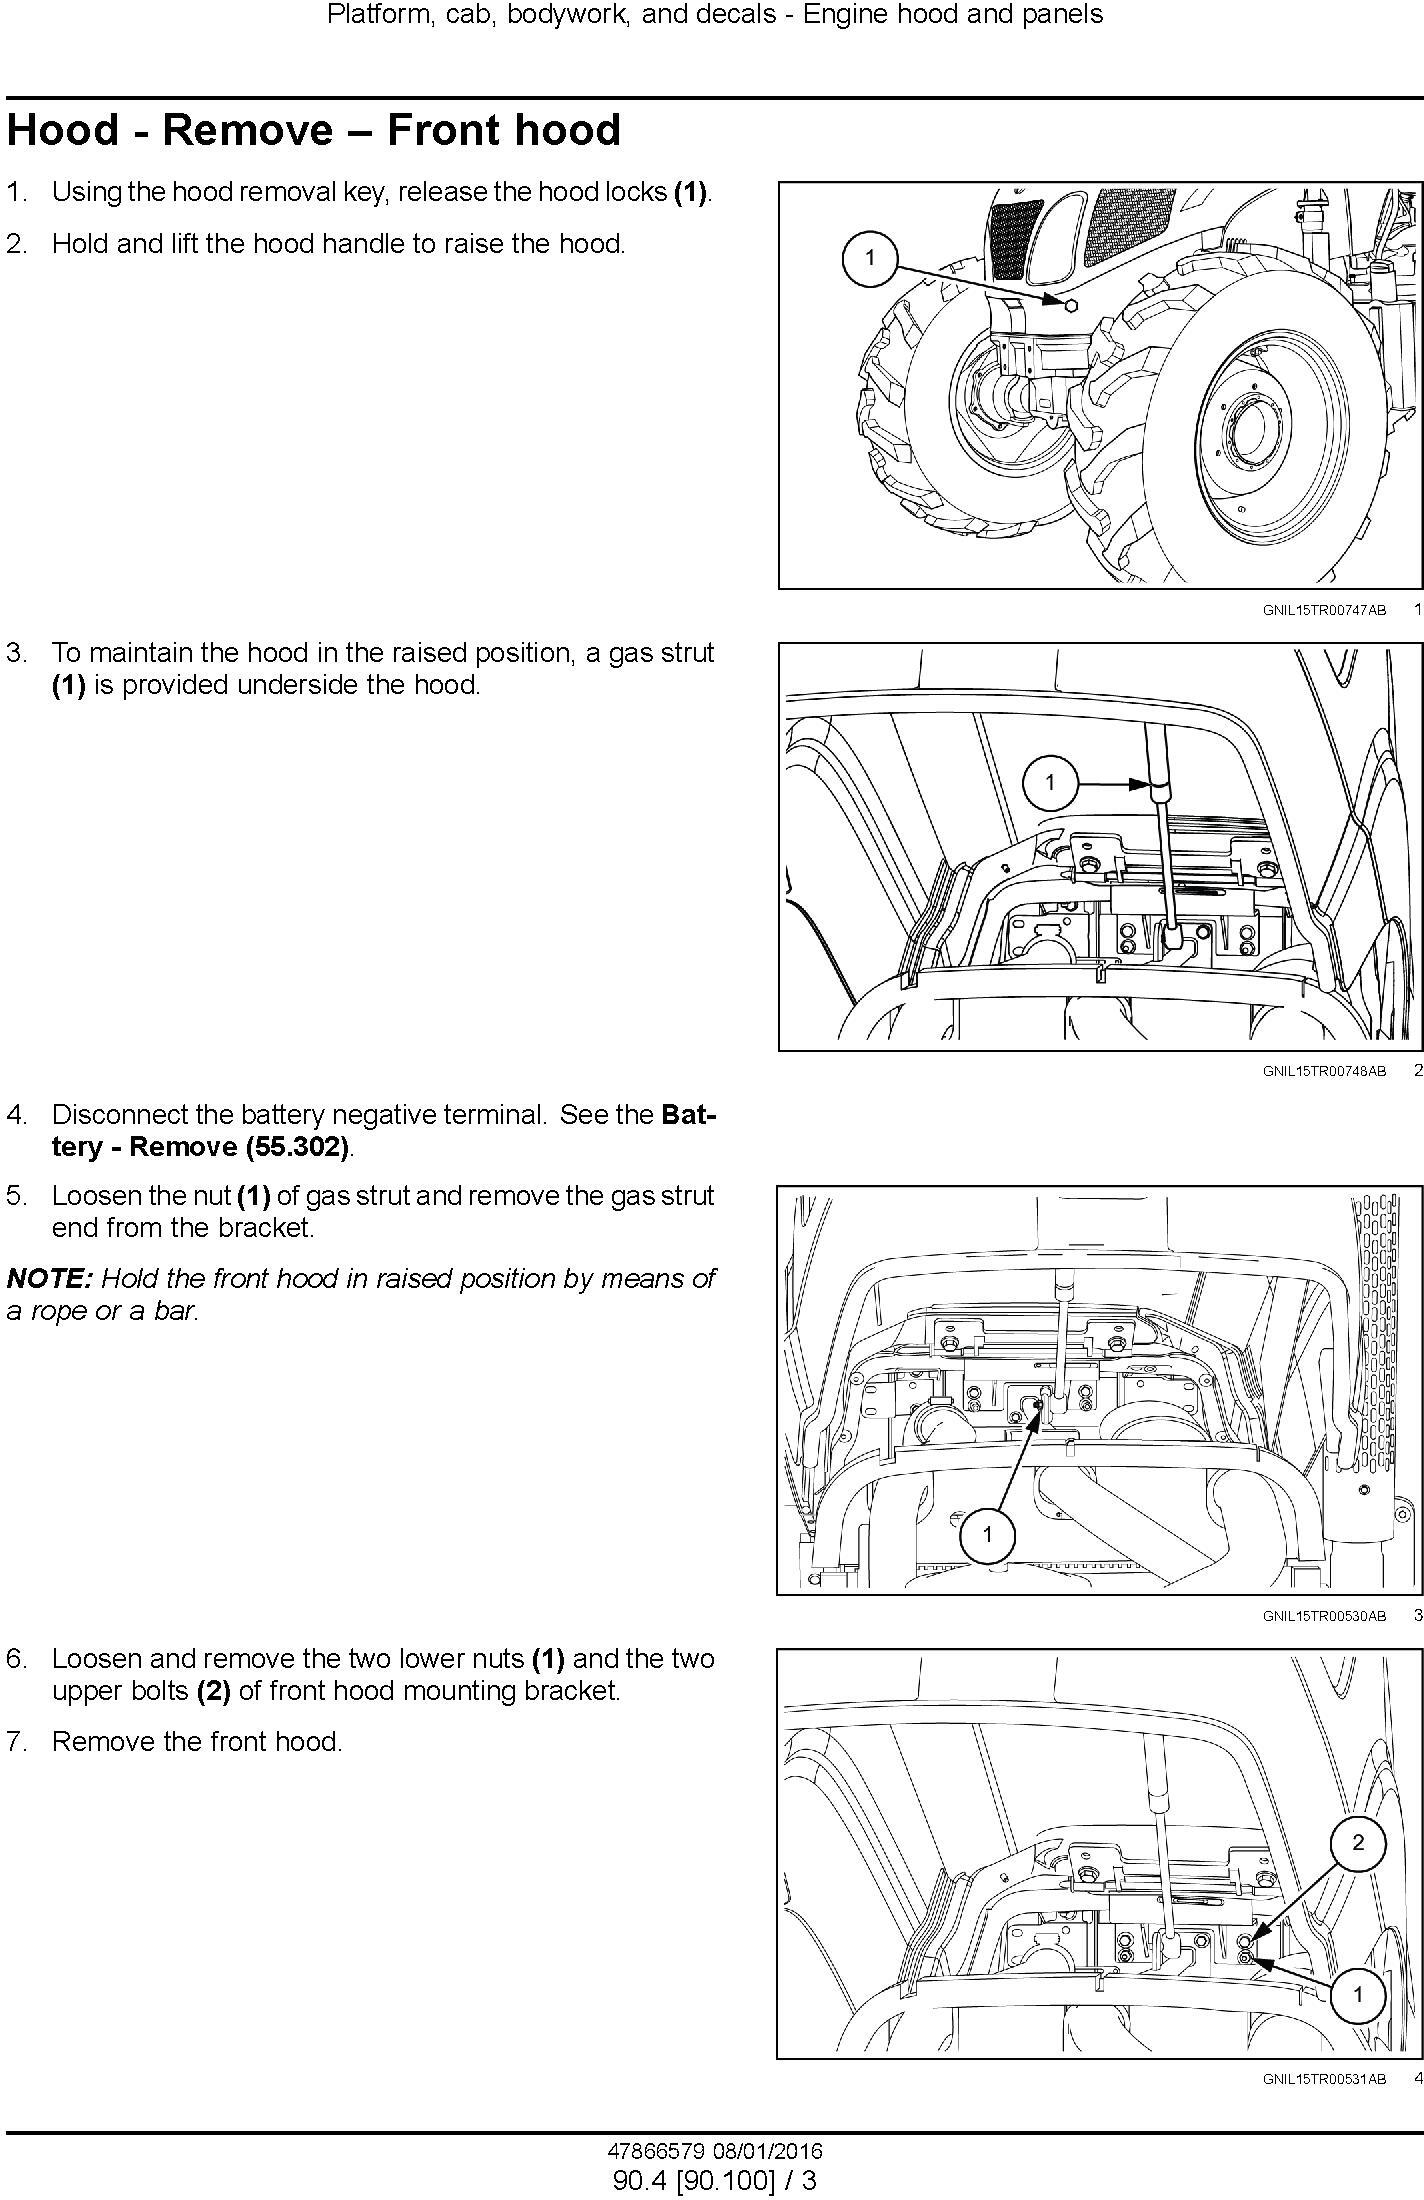 New Holland 8010, 9010 Tractor Service Manual - 1